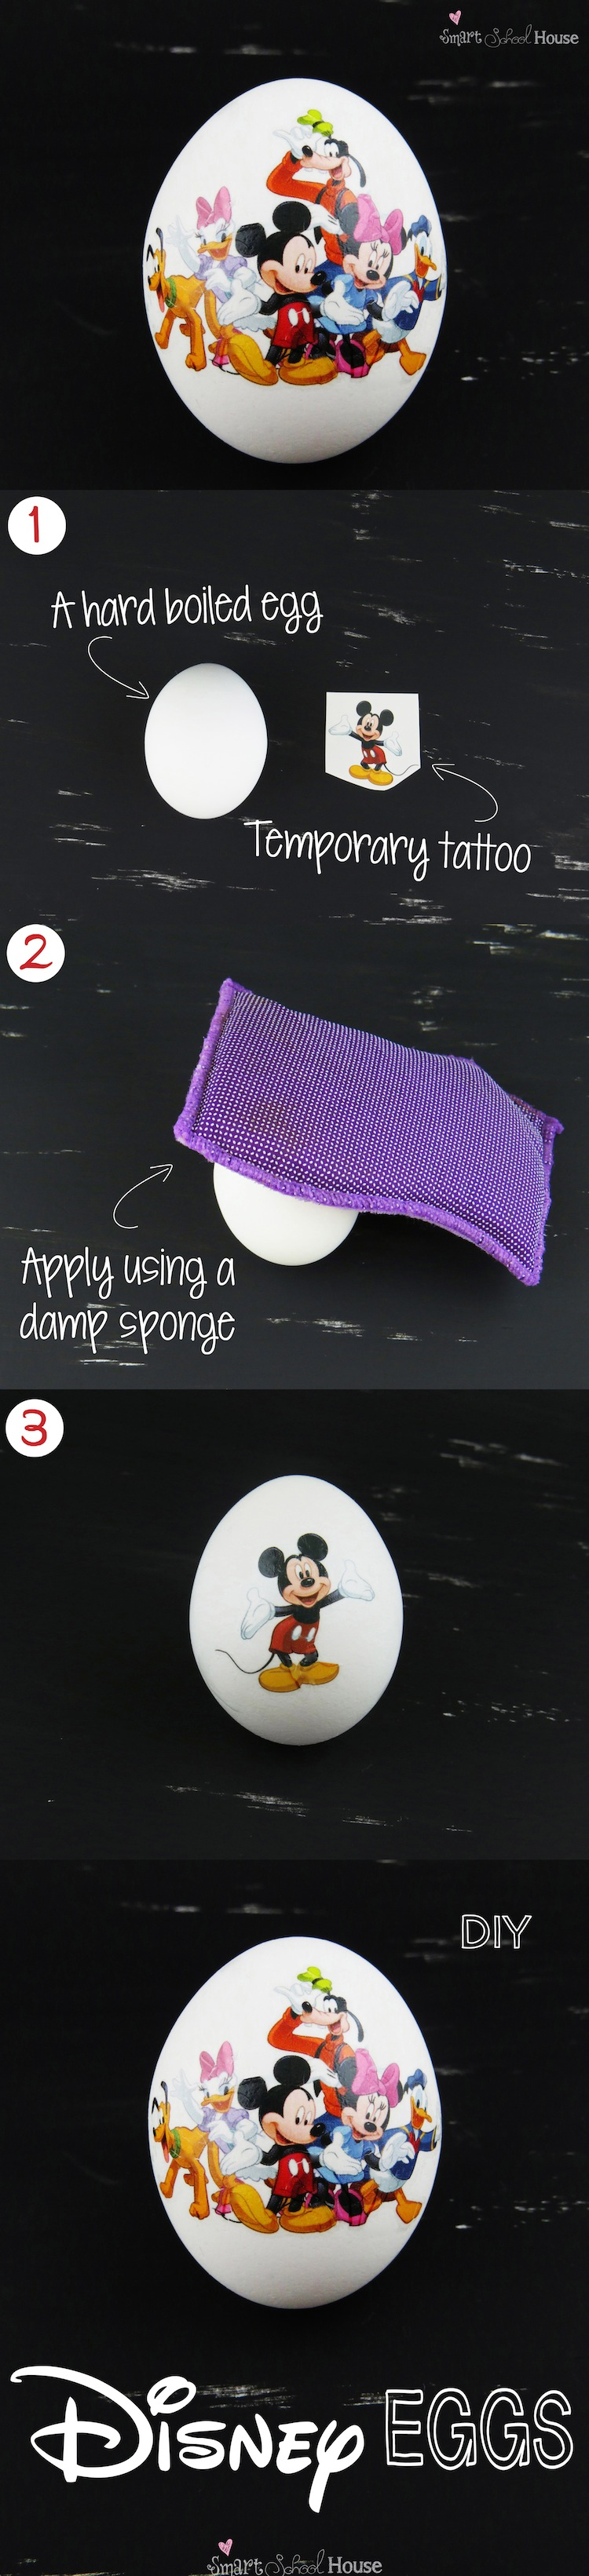 Disney Decorated Eggs by Smart School House  #disney